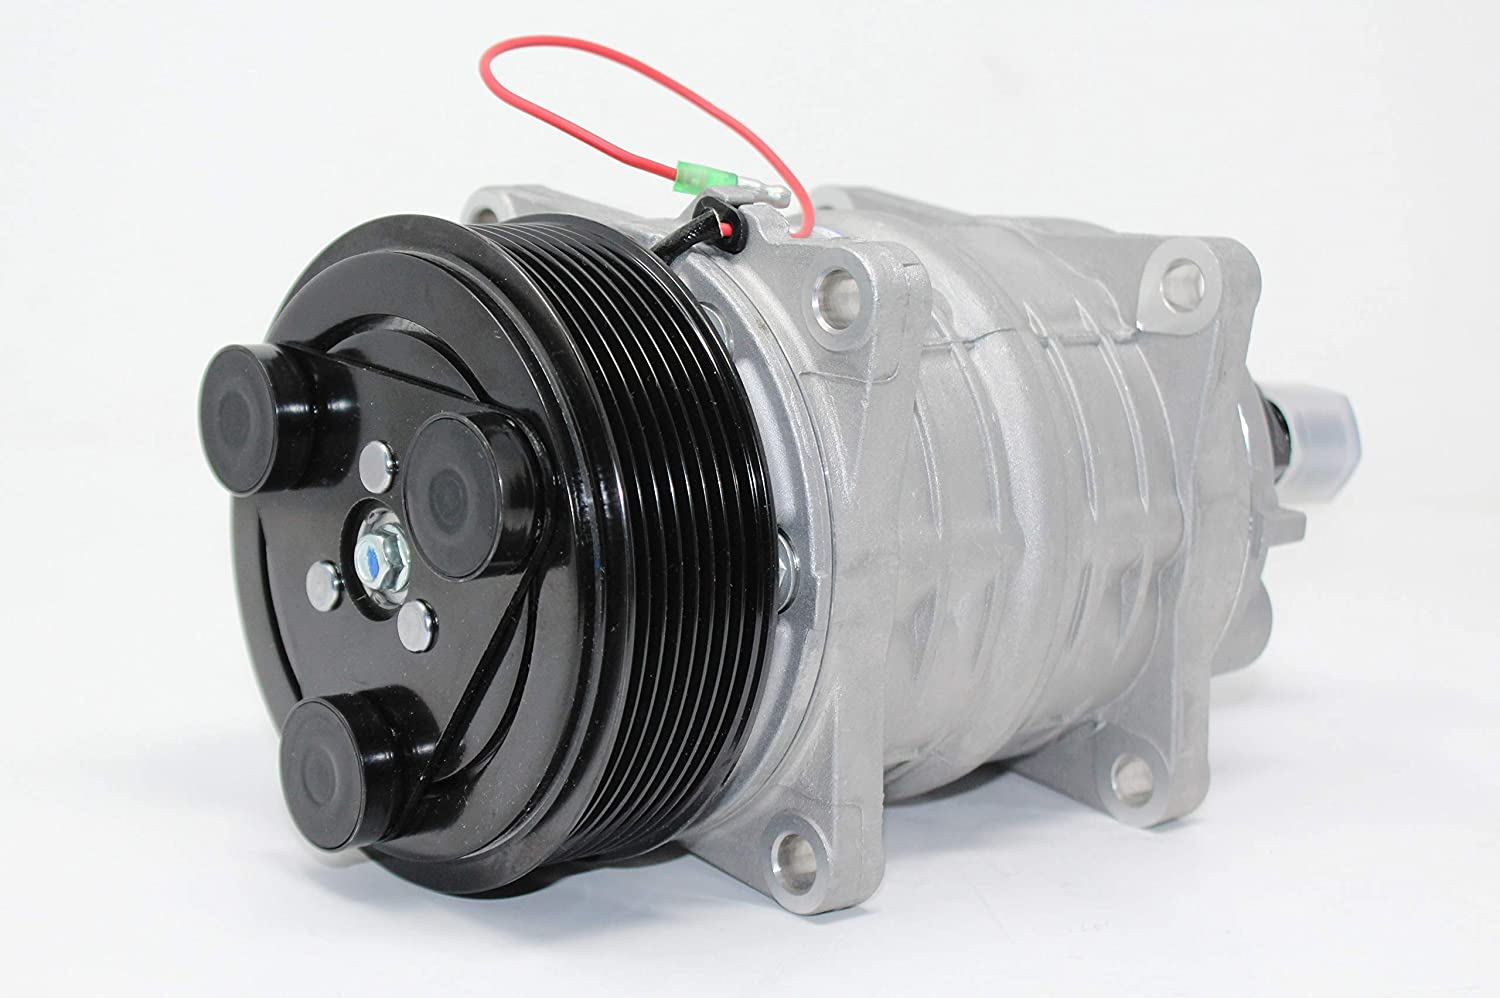 AC COMPRESSOR FOR THERMO KING 75R861 APU 102-580 TRIPAC 102-1018 Jacksonville Mall Luxury